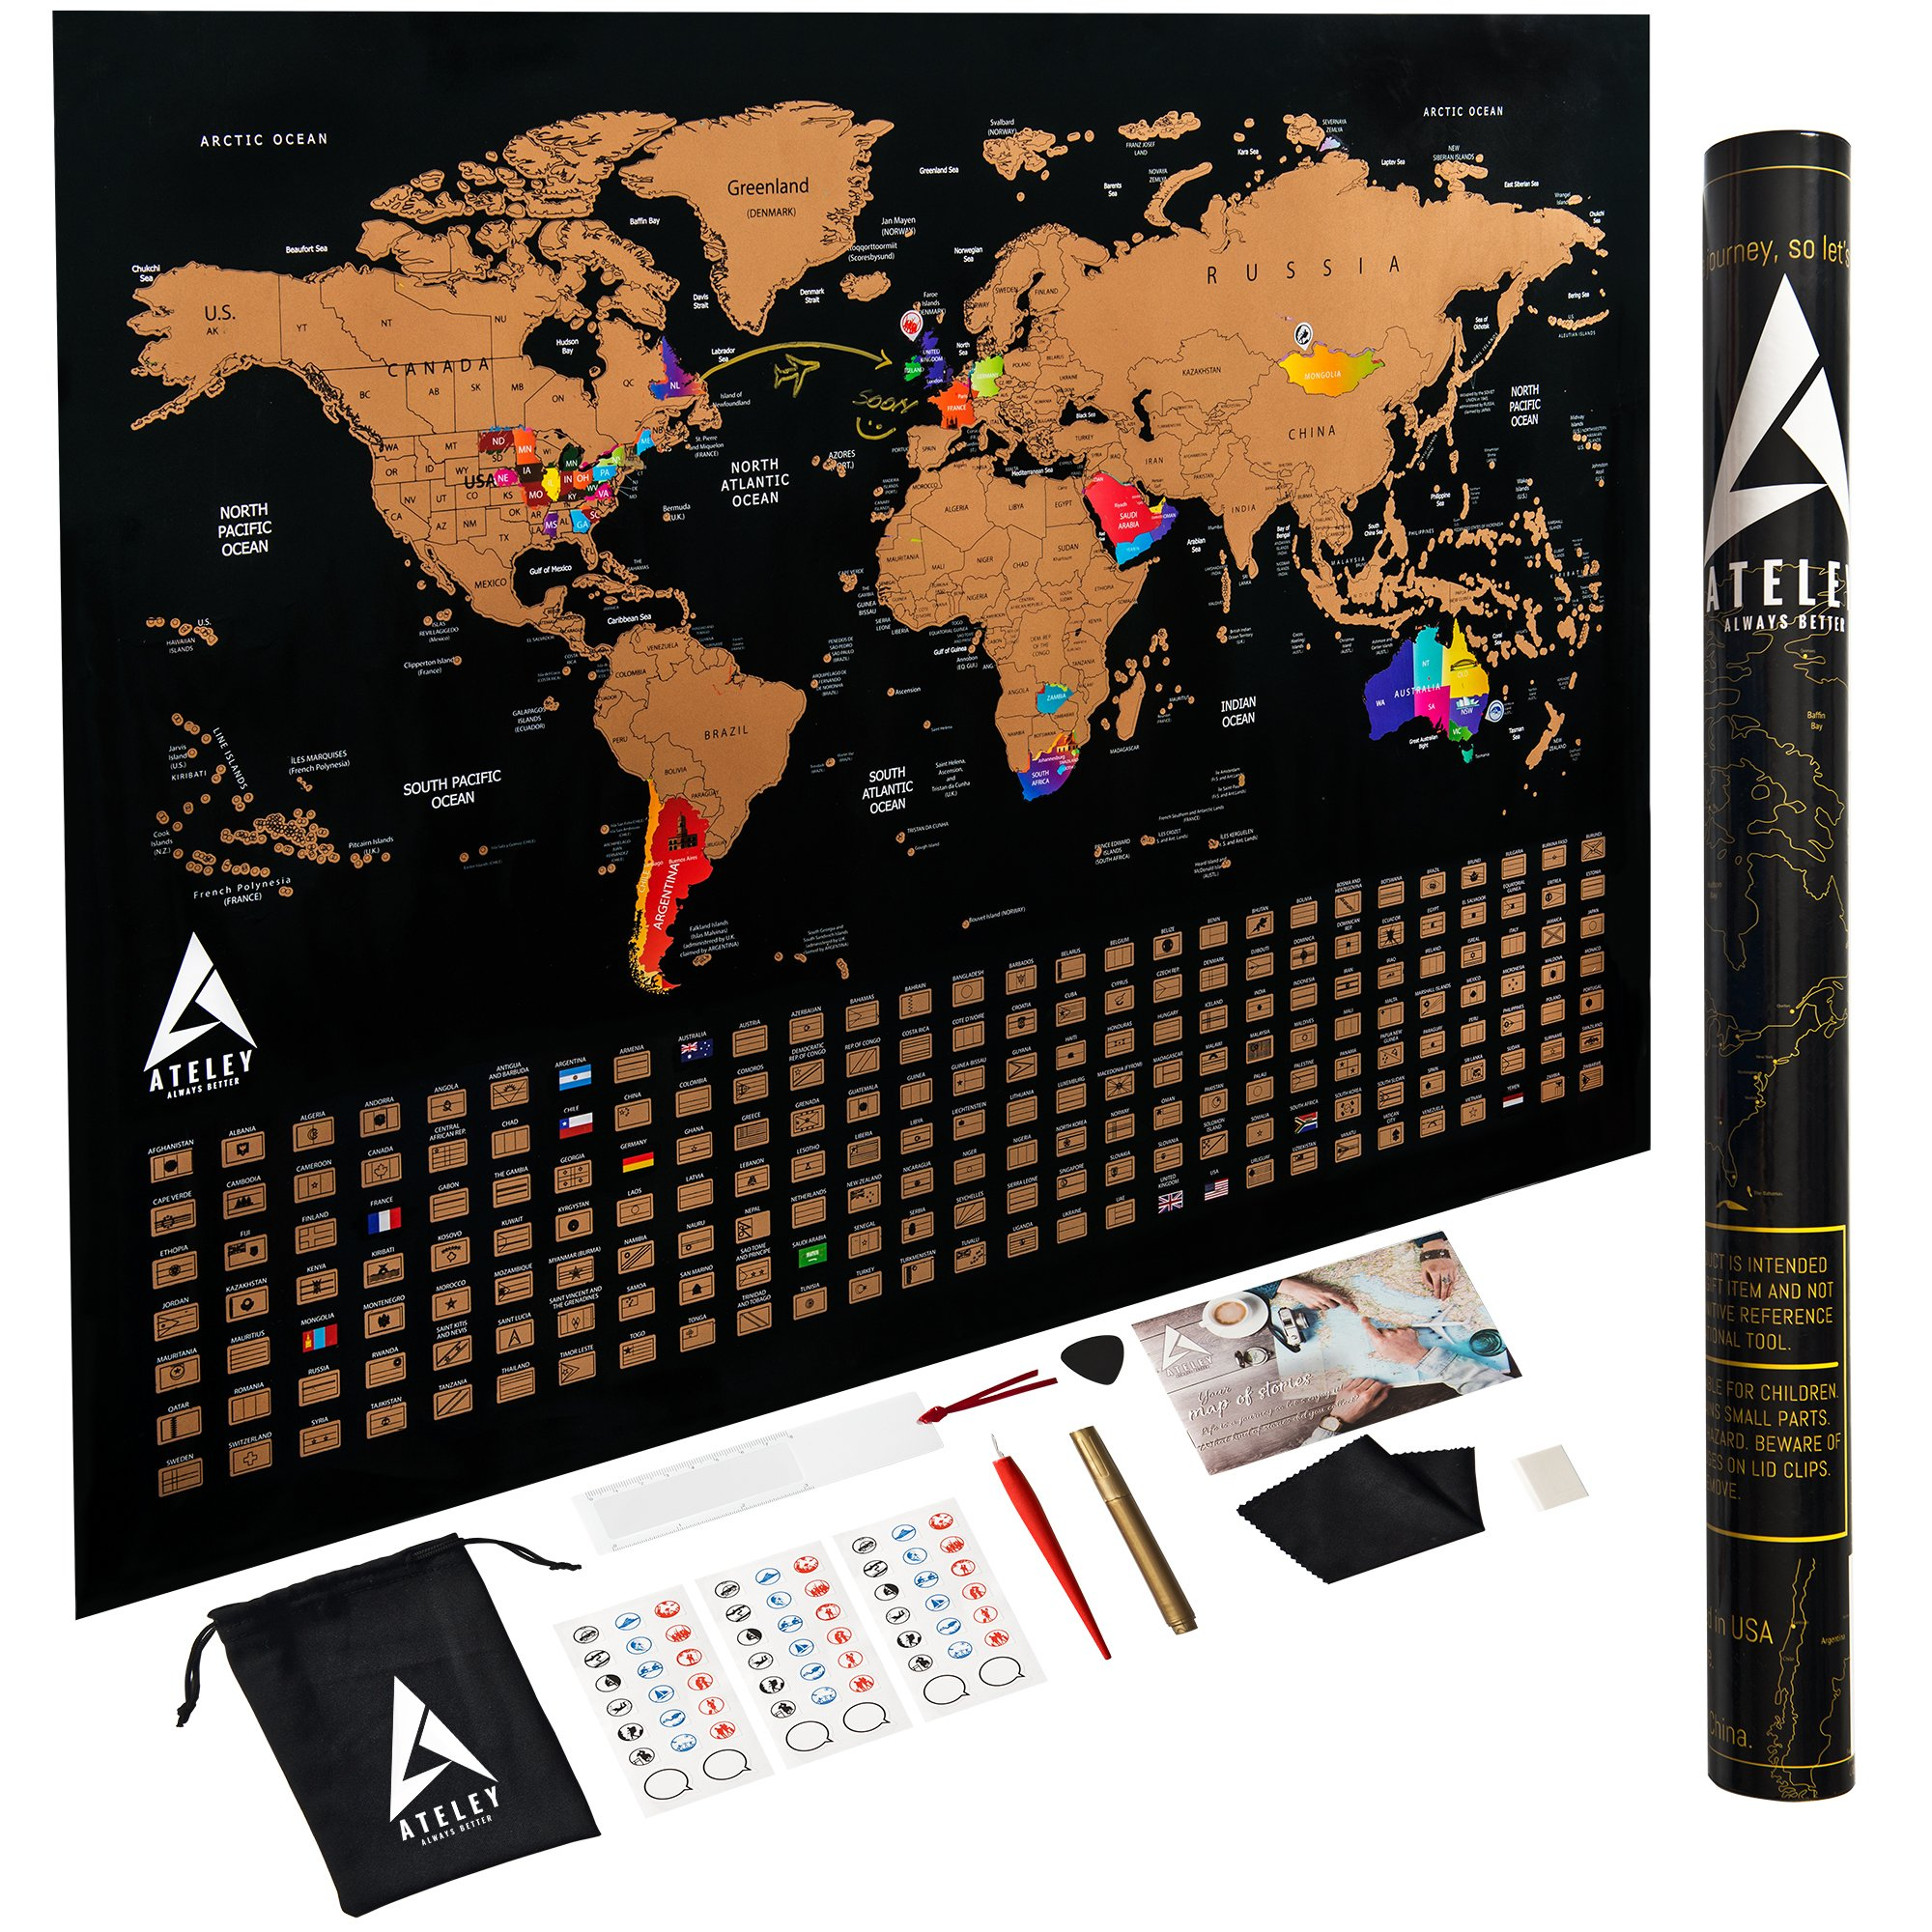 Scratch off Map of the World XL Poster - US States outlined - Extra Large size 33''x24'', Deluxe packaging and 11 Accessories, Personalized World Travel Map with Country Flags as a perfect gift